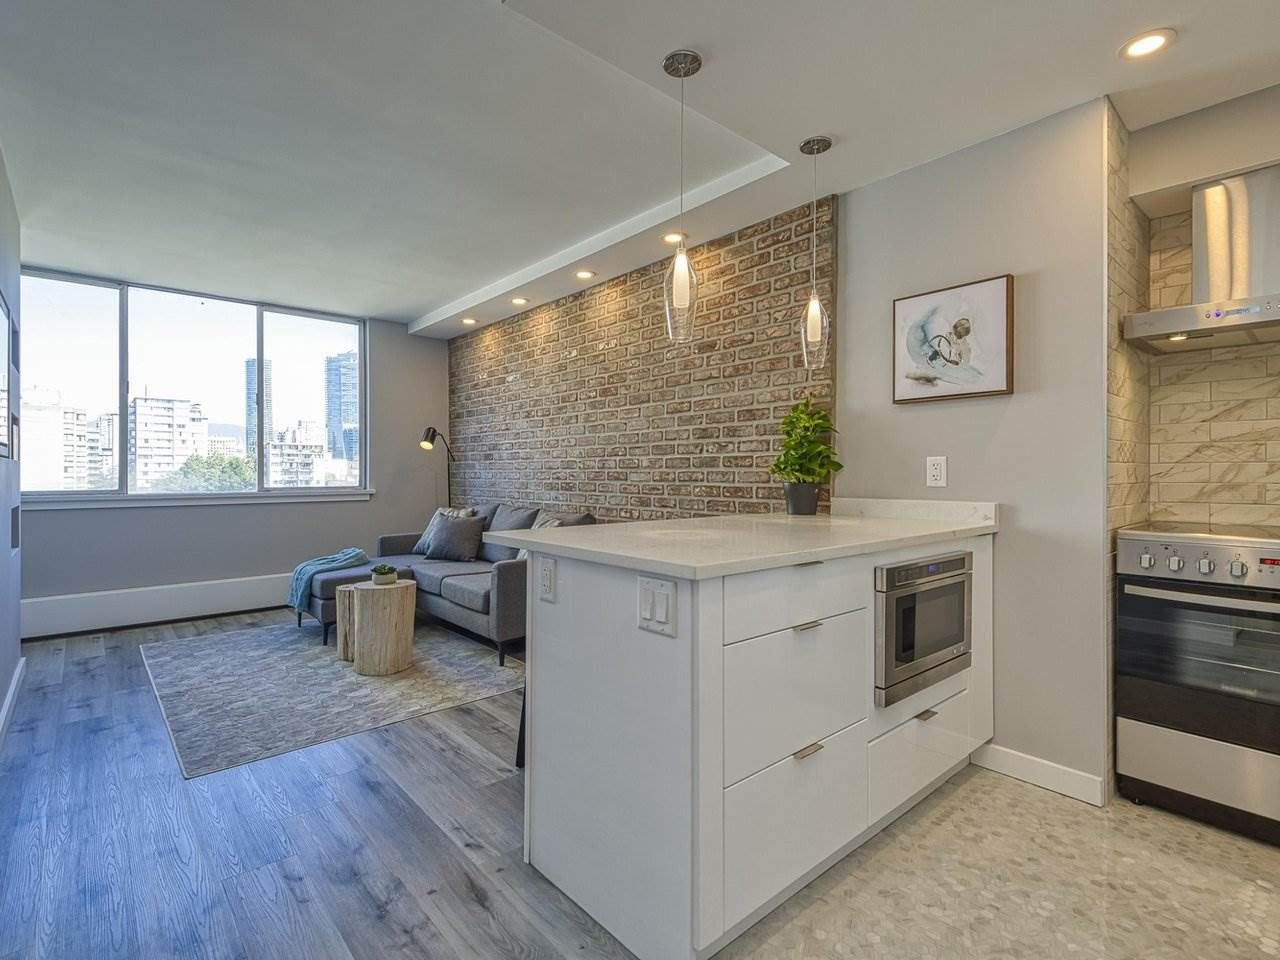 """Main Photo: 905 1250 BURNABY Street in Vancouver: West End VW Condo for sale in """"The Horizon"""" (Vancouver West)  : MLS®# R2559858"""